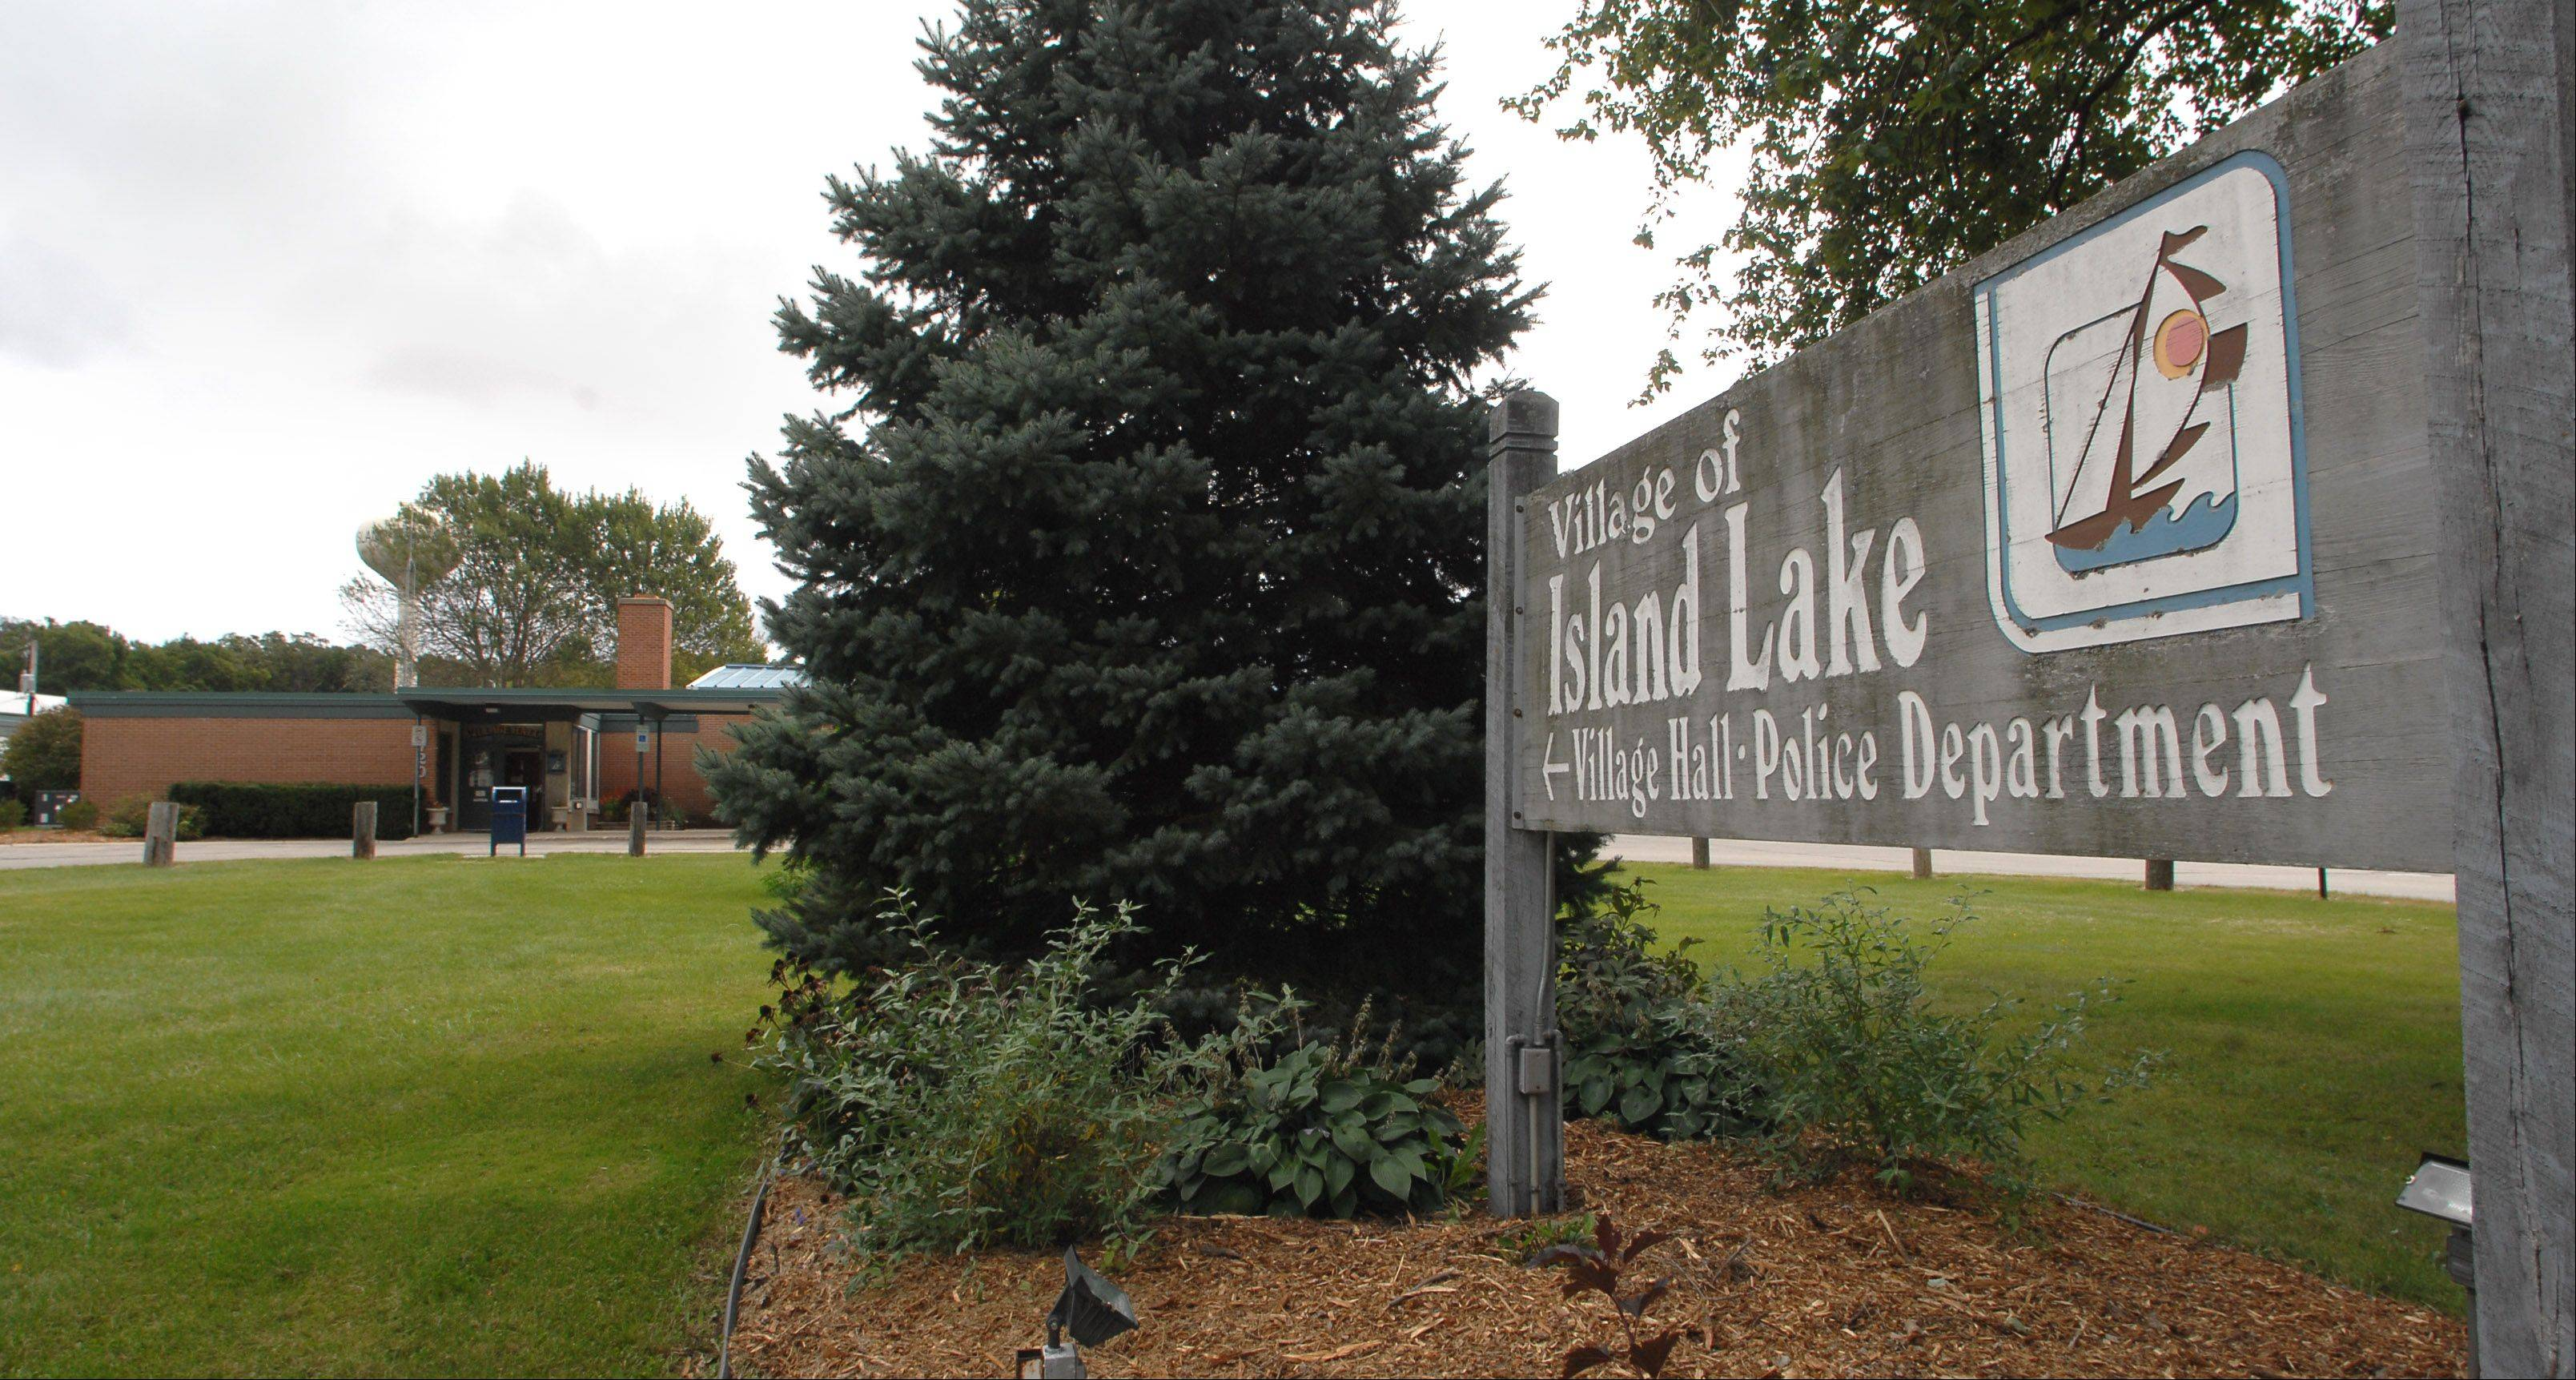 Ex-mayor questions plan for new Island Lake village hall